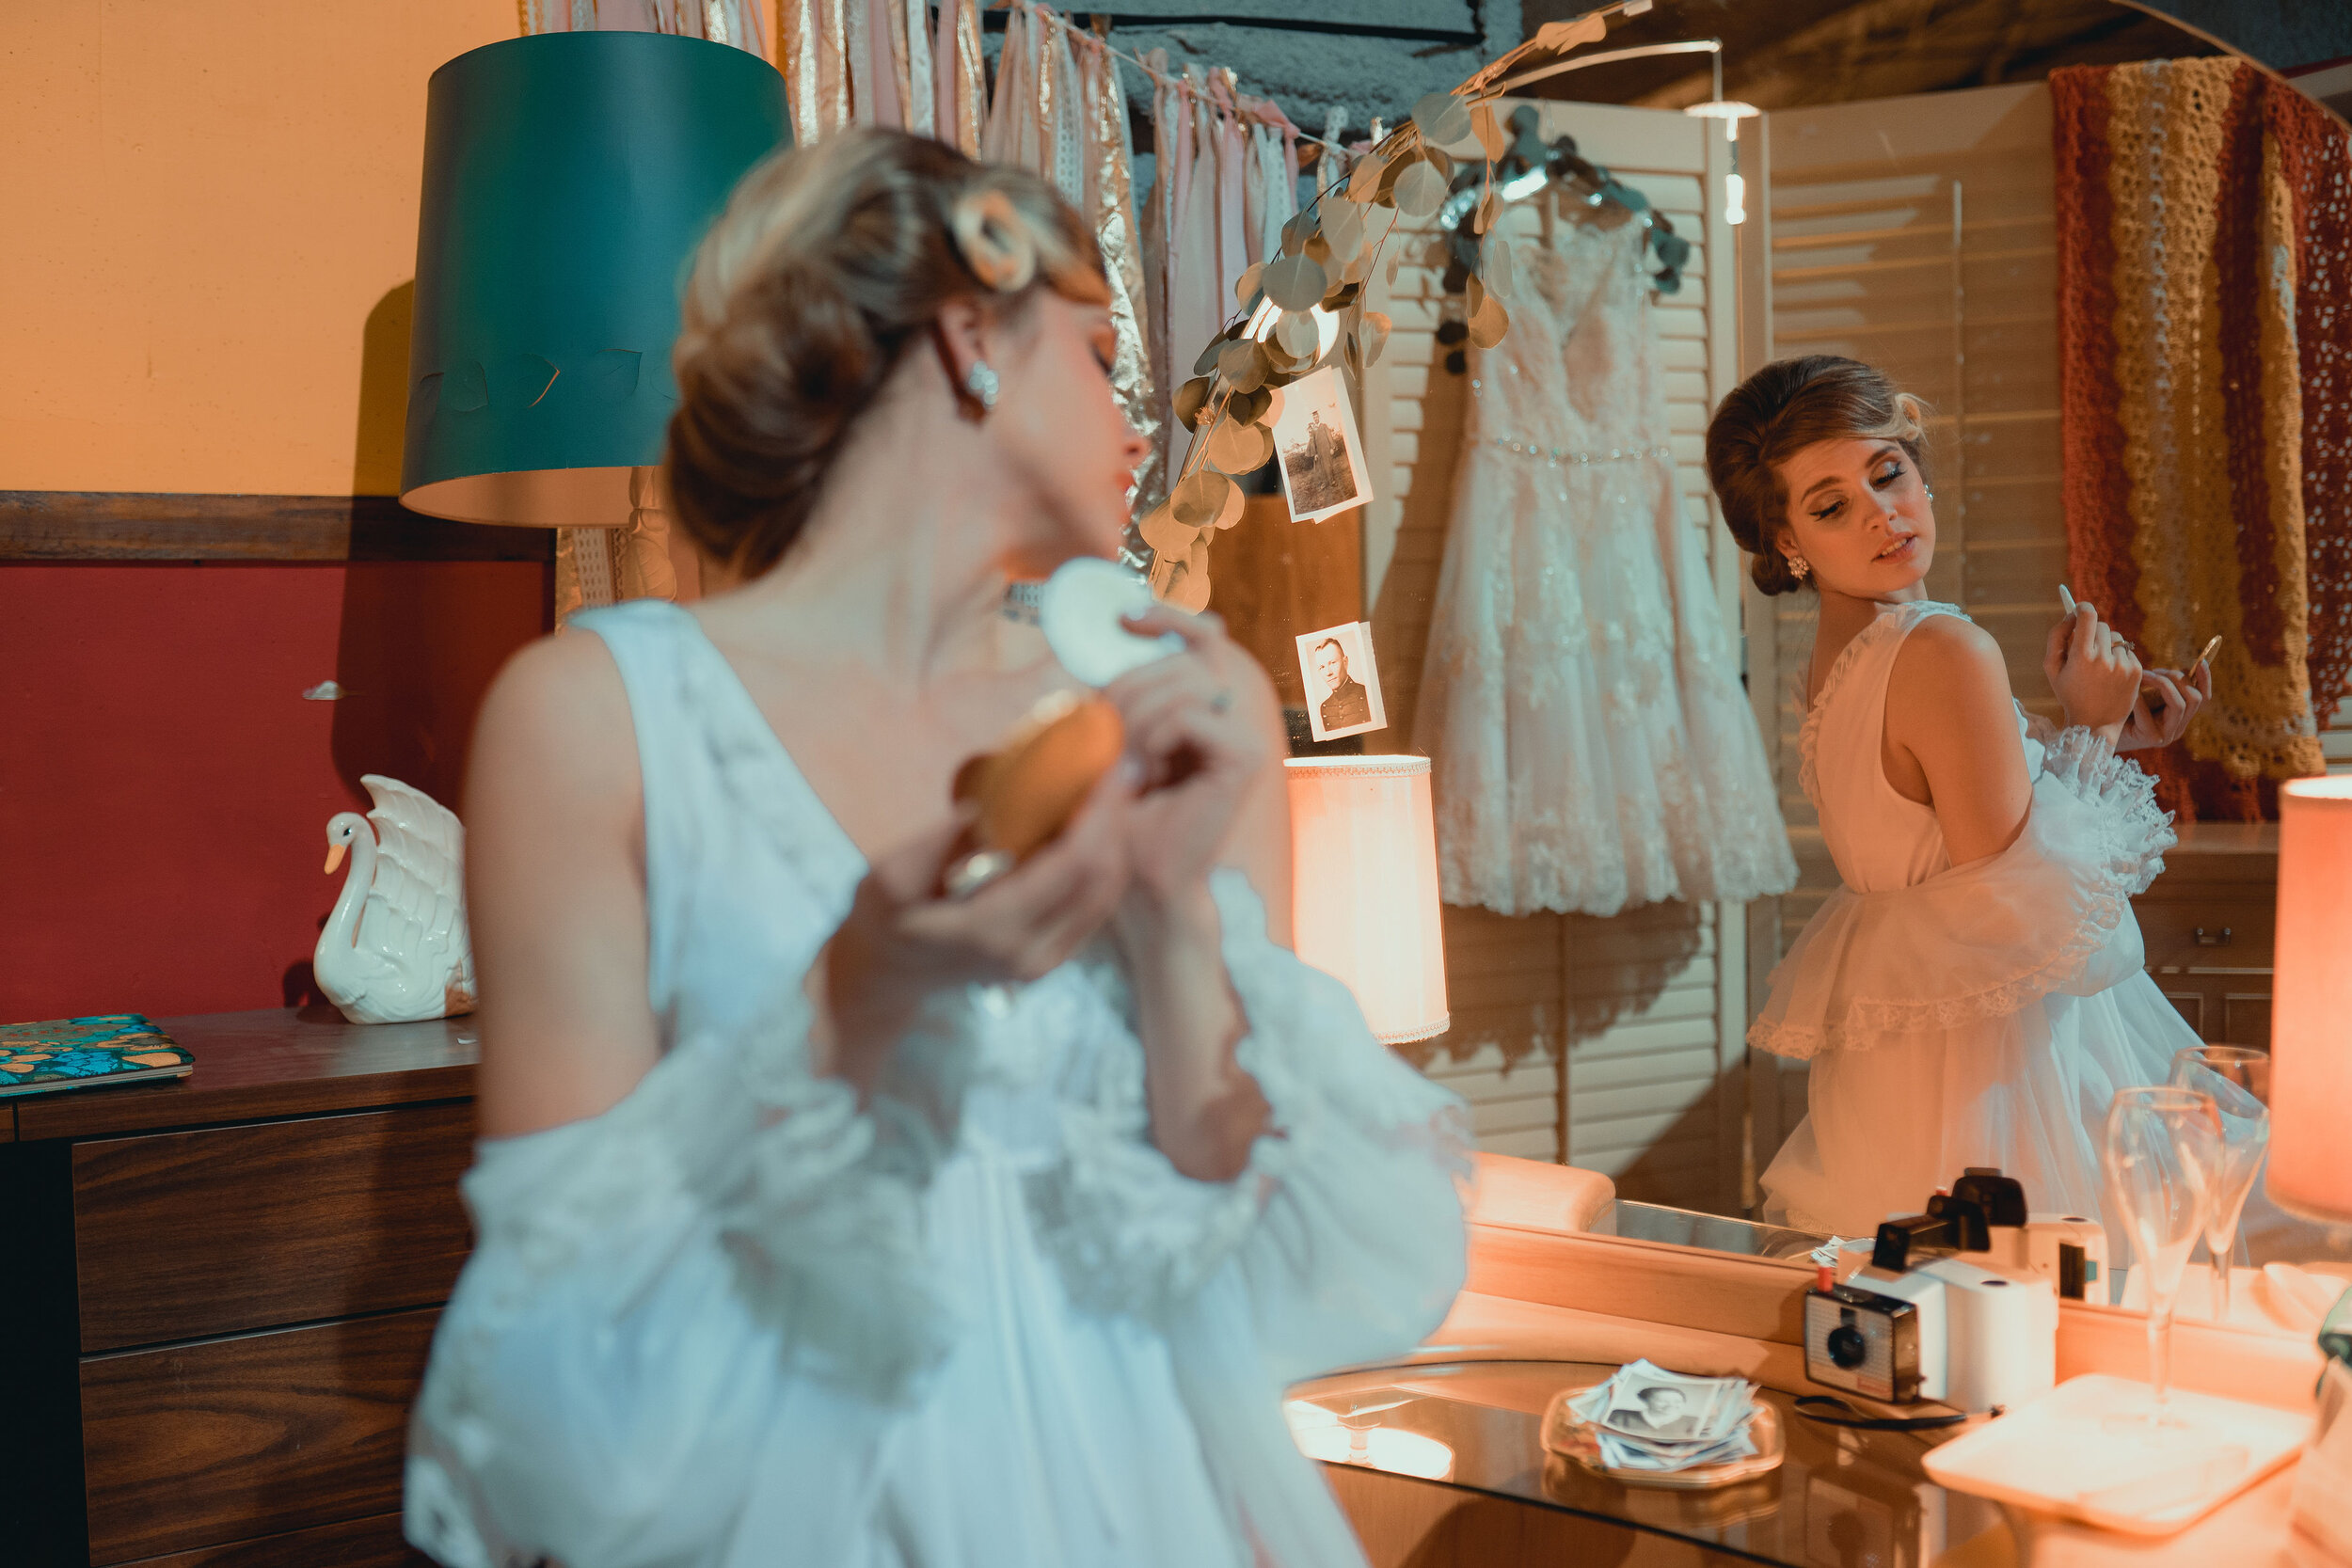 bride in vintage nightgown looks into mirror on mid century modern dresser, powders her nose, with vintage hair style